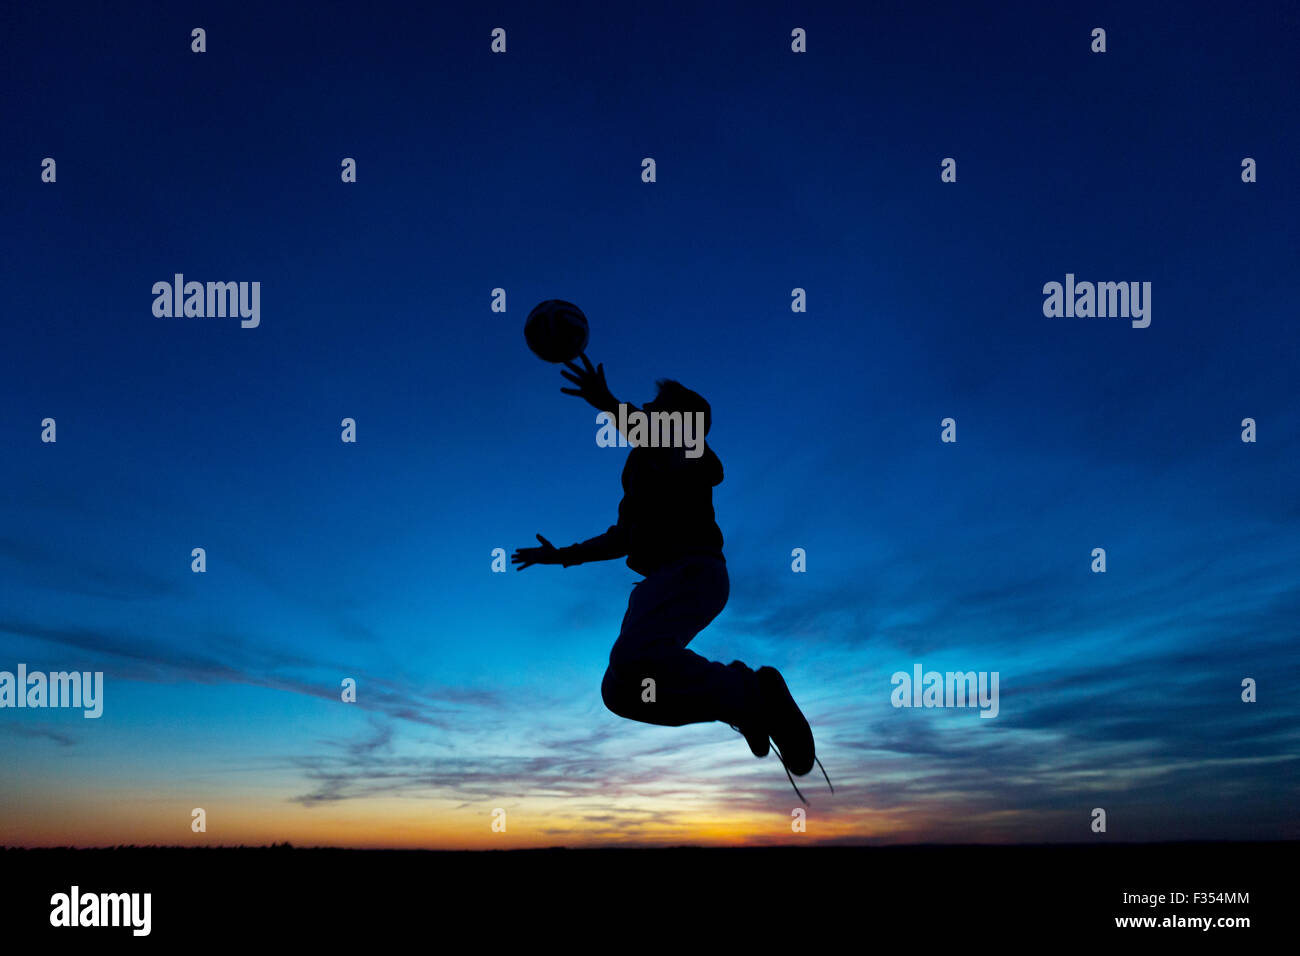 silhouette of a boy playing outside at dusk - Stock Image